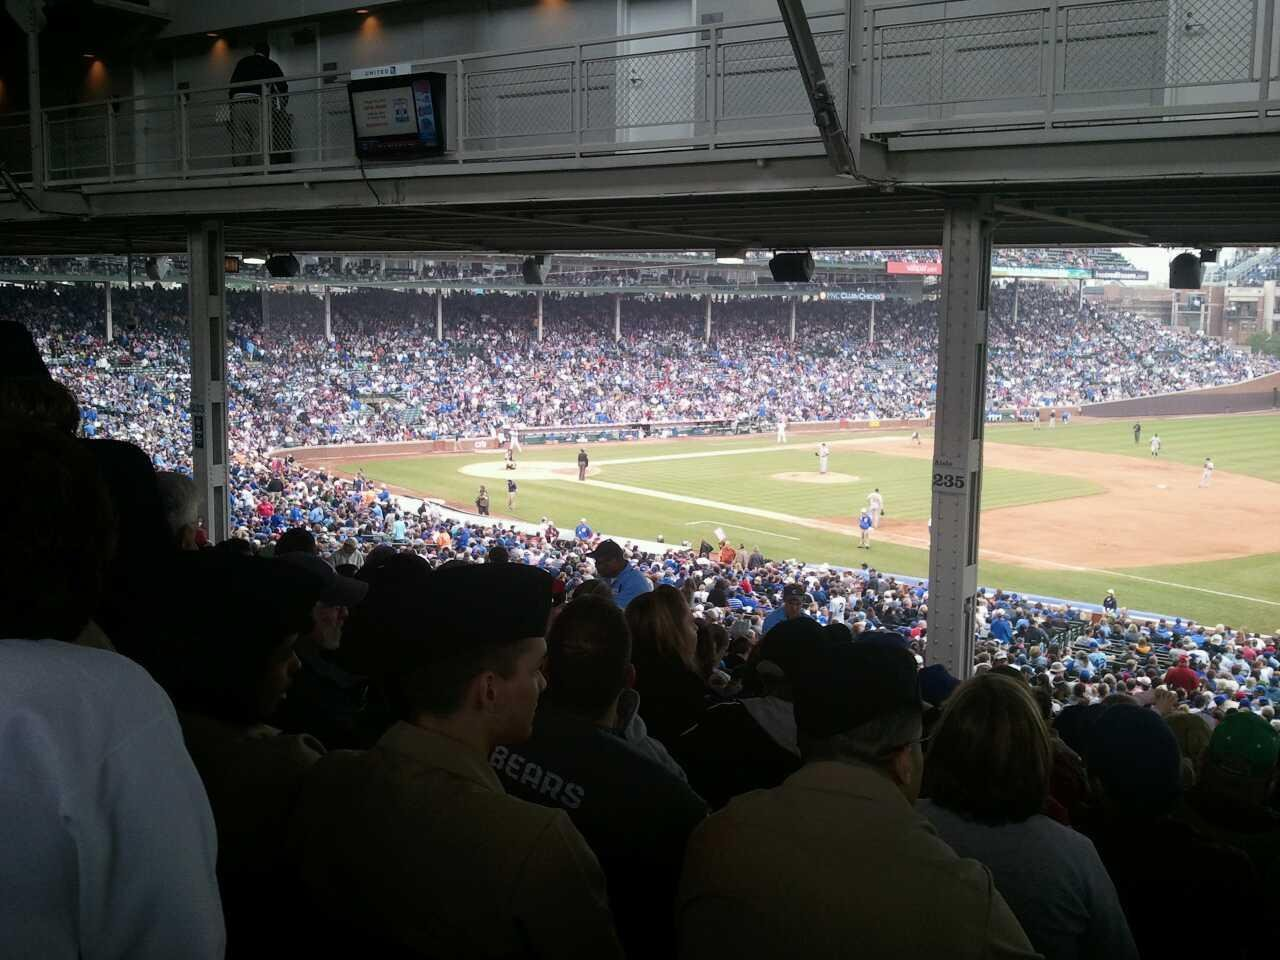 Wrigley Field Section 228 Row 21 Seat 11